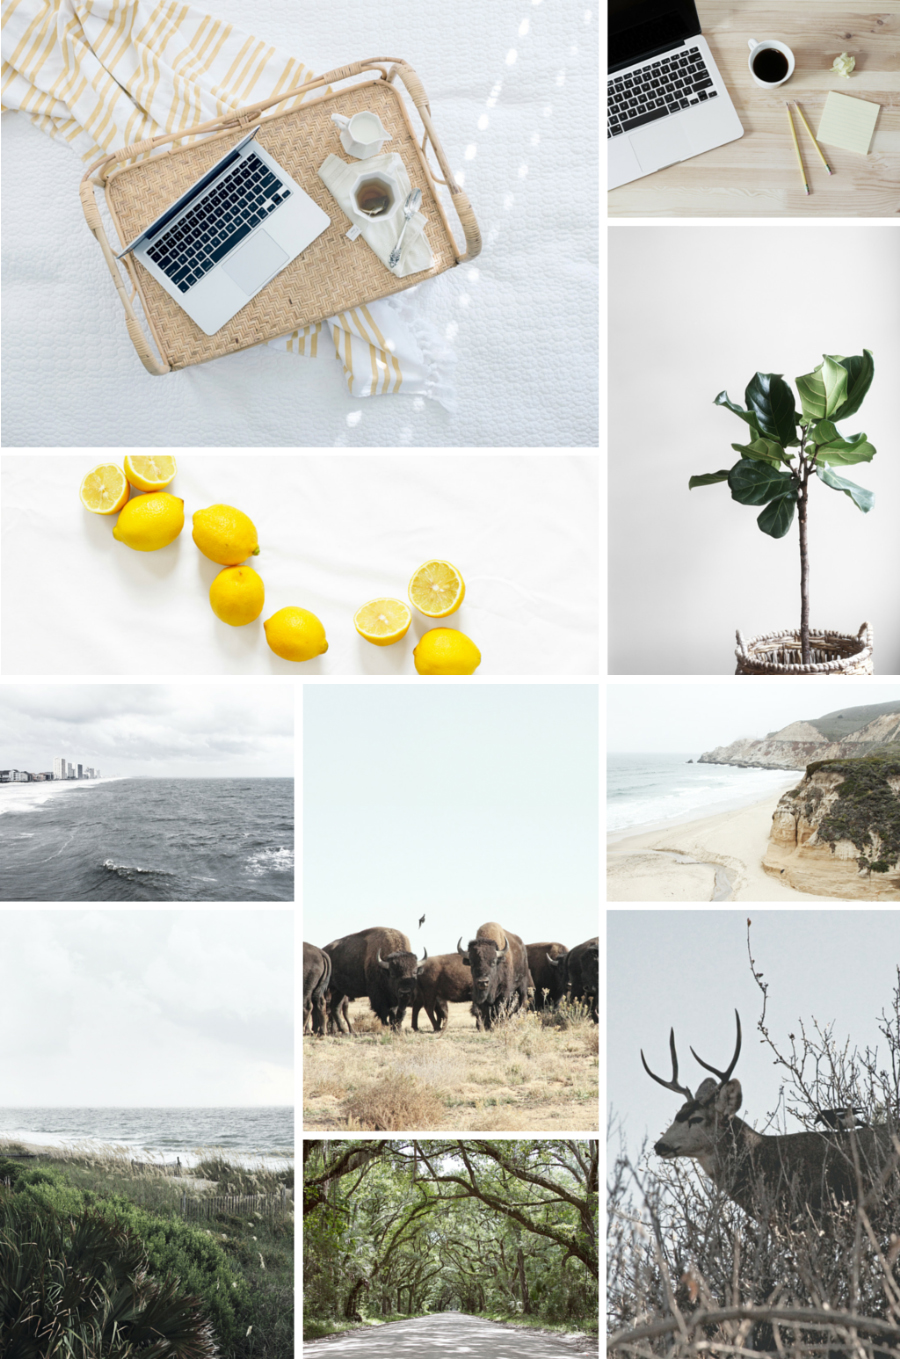 Curated Free Stock Photos